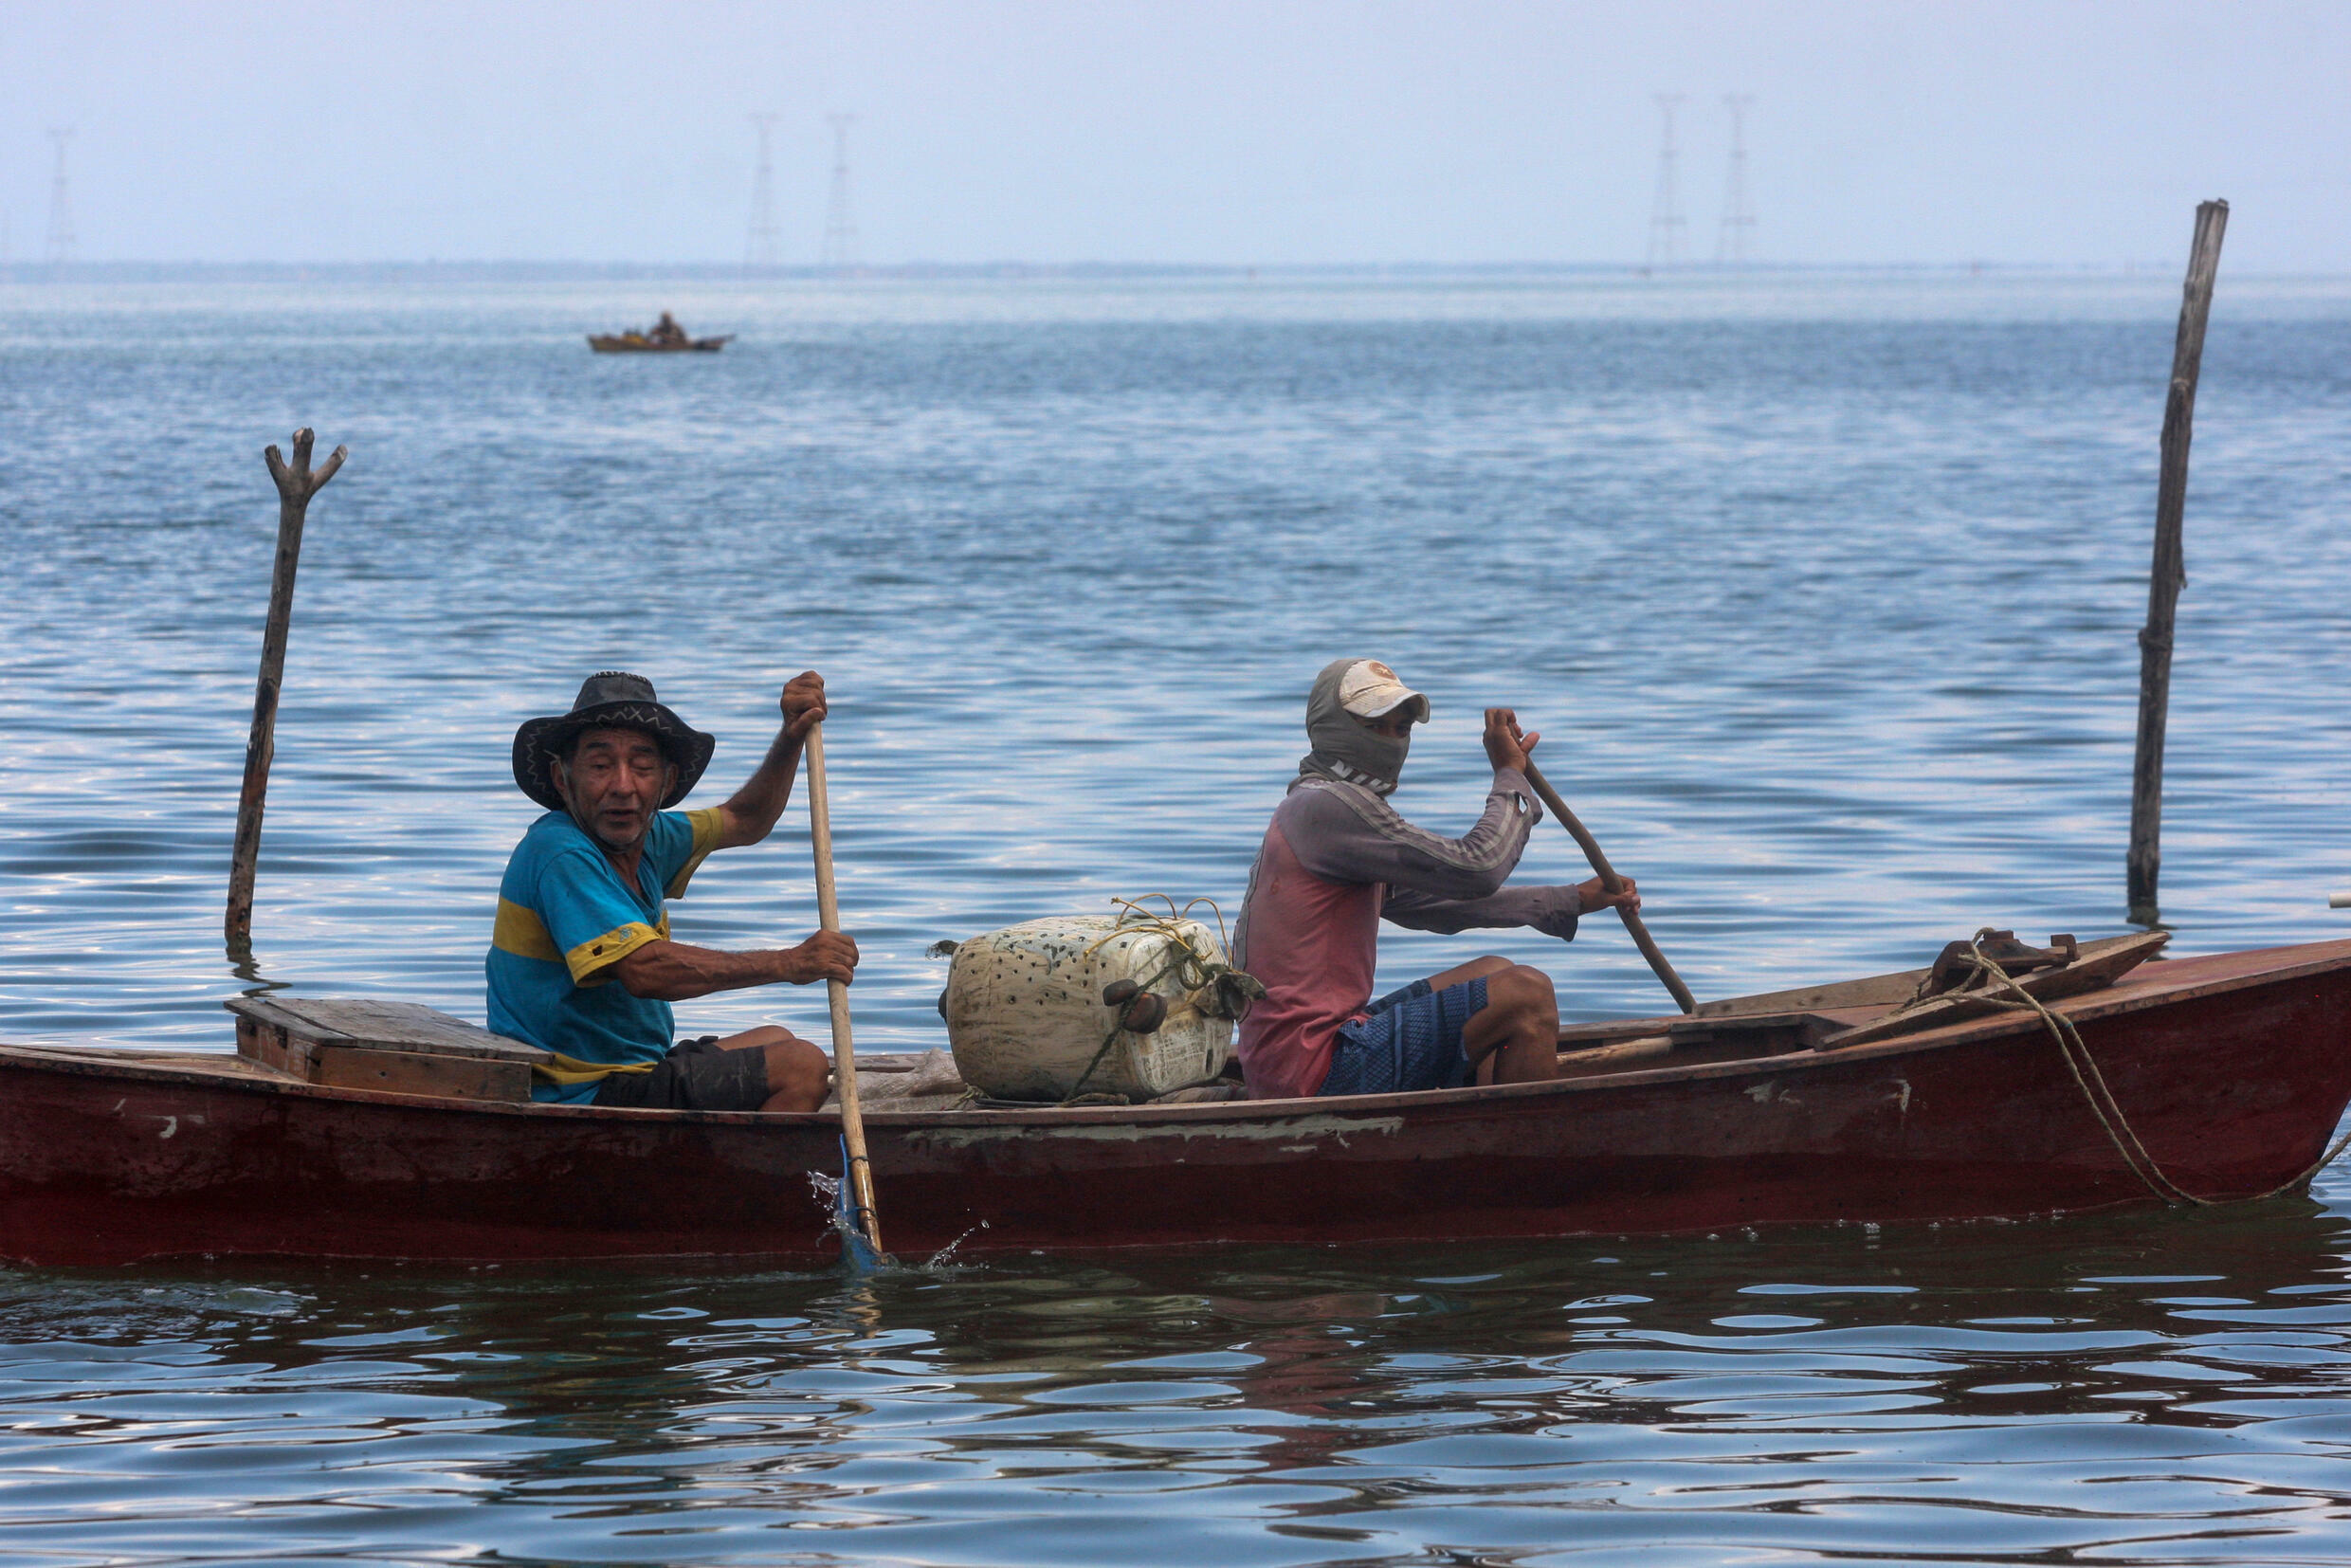 Fishermen in Lake Maracaibo often have to row their boats due to fuel shortages